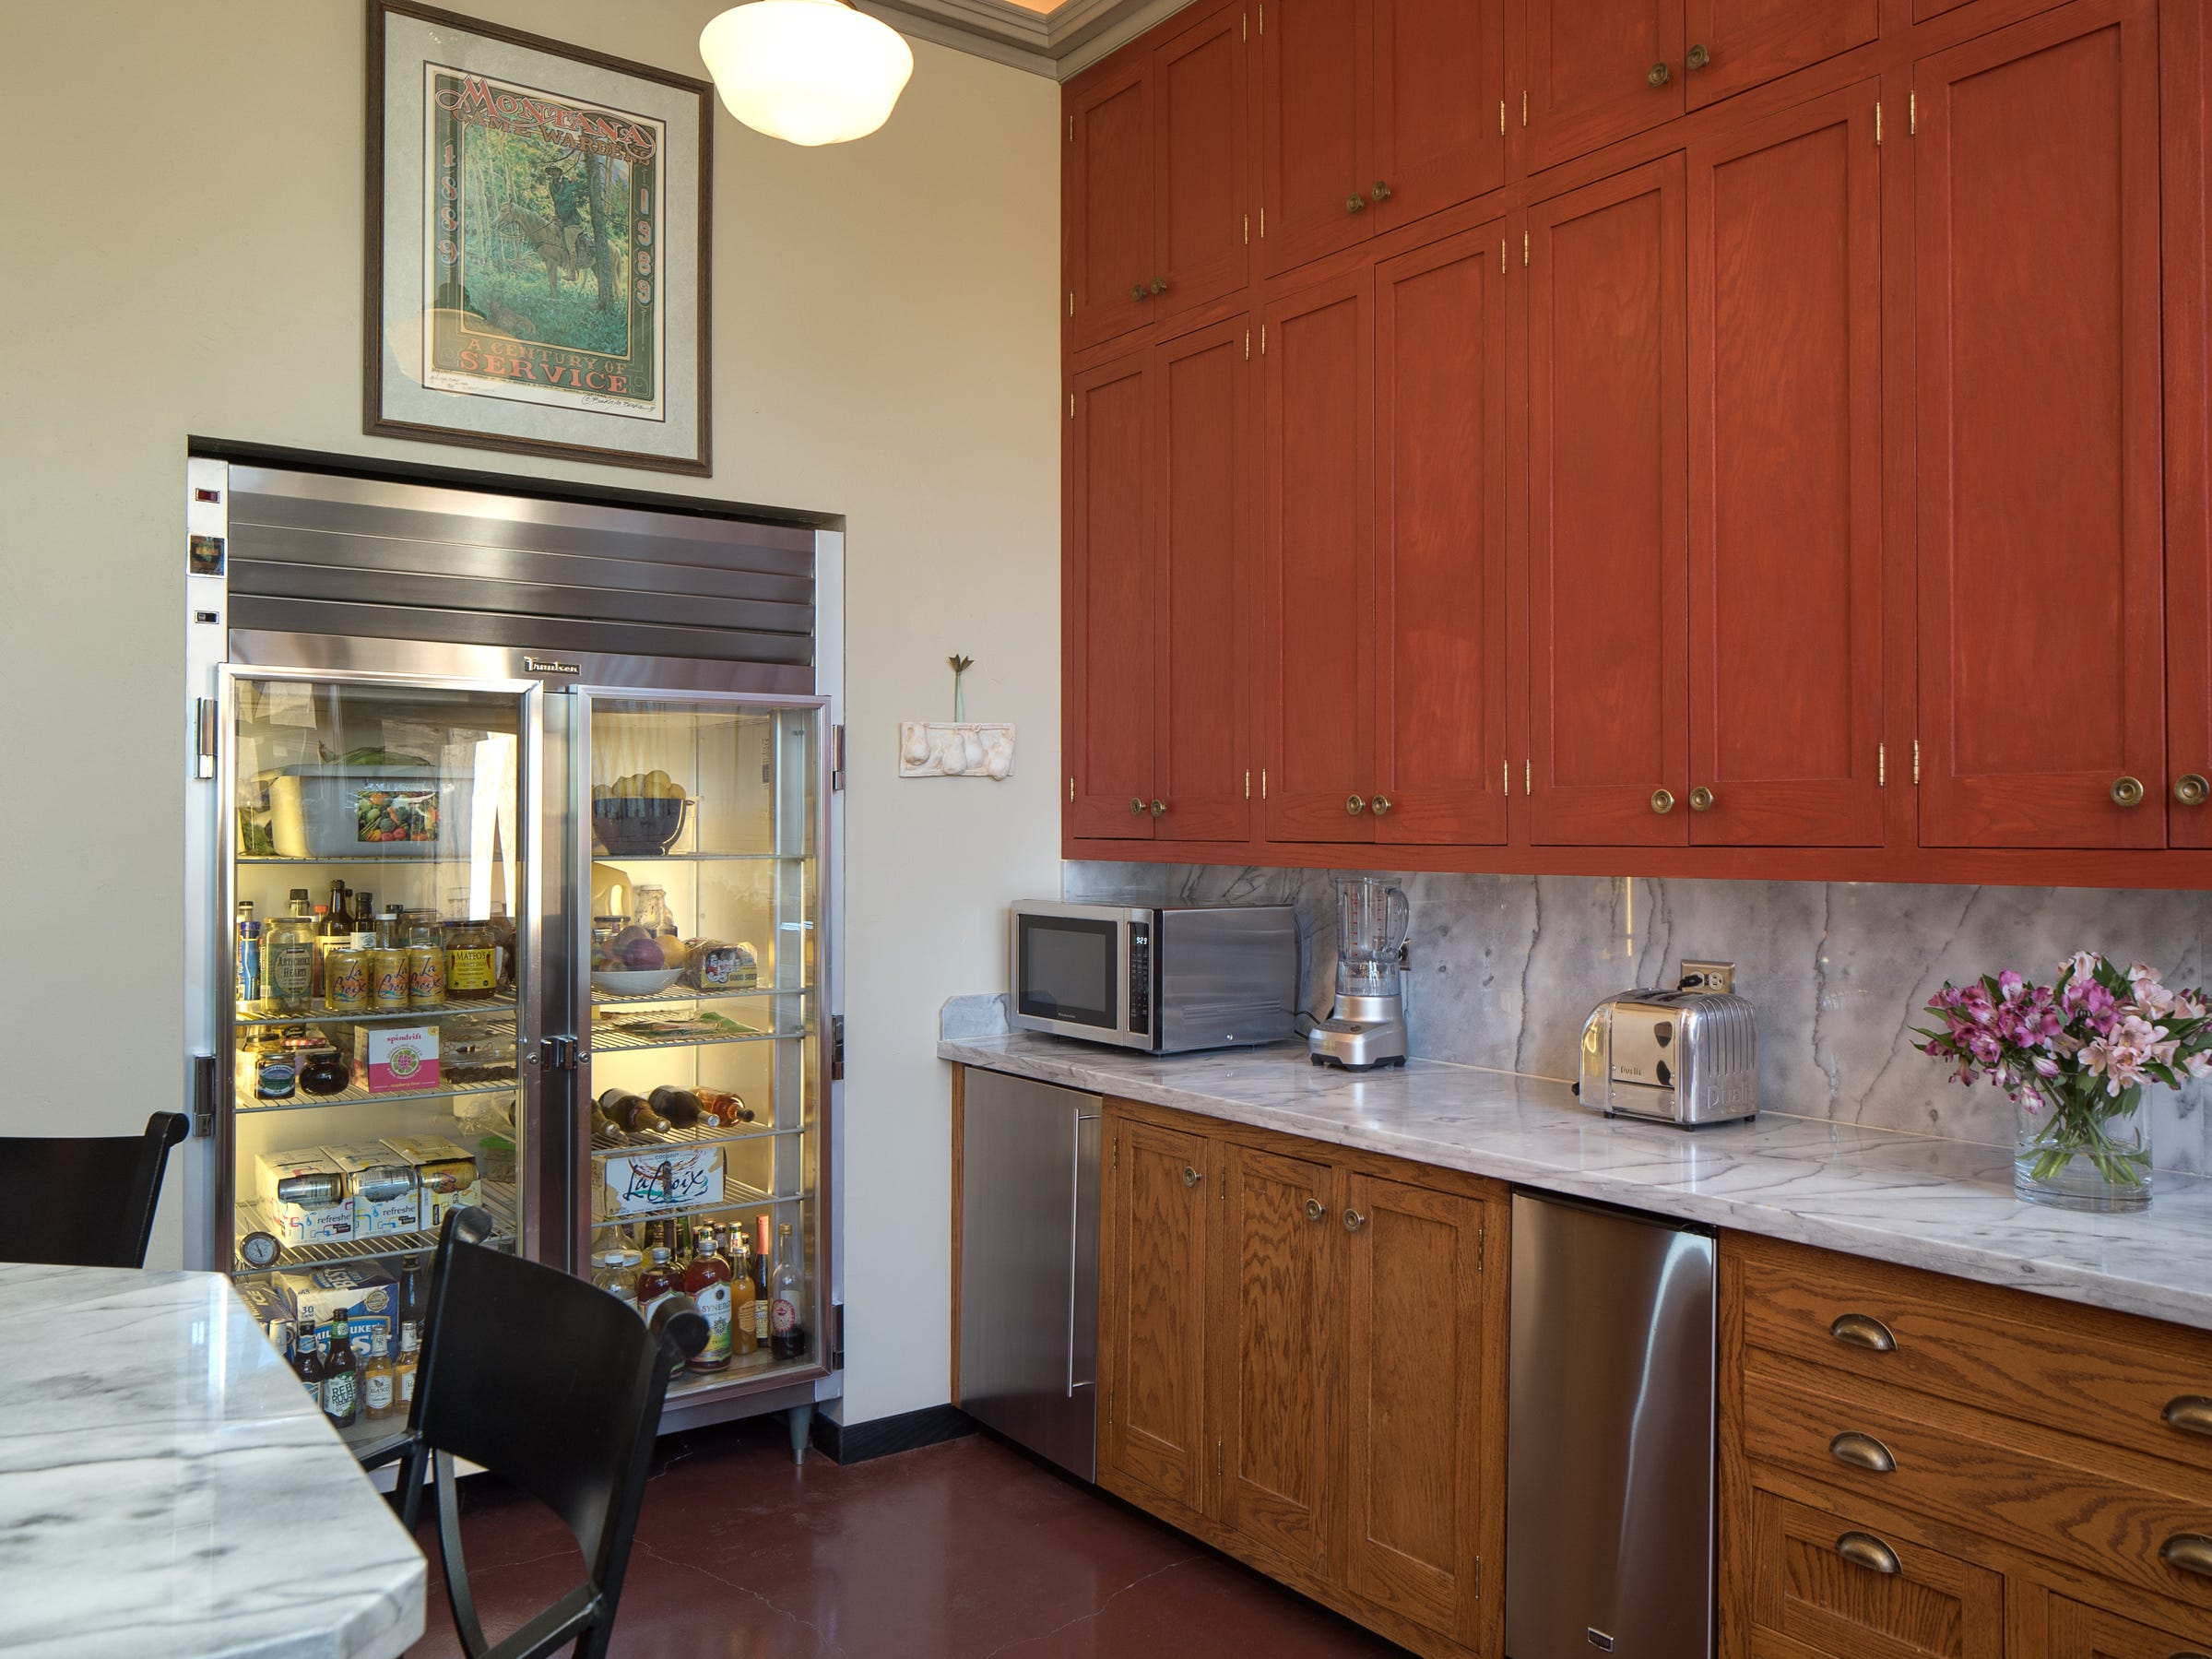 Plenty of cabinets line the kitchen in the 100-year-old former Little Daisy Hotel in Jerome, which was later turned into a single-family home and is now on the market.